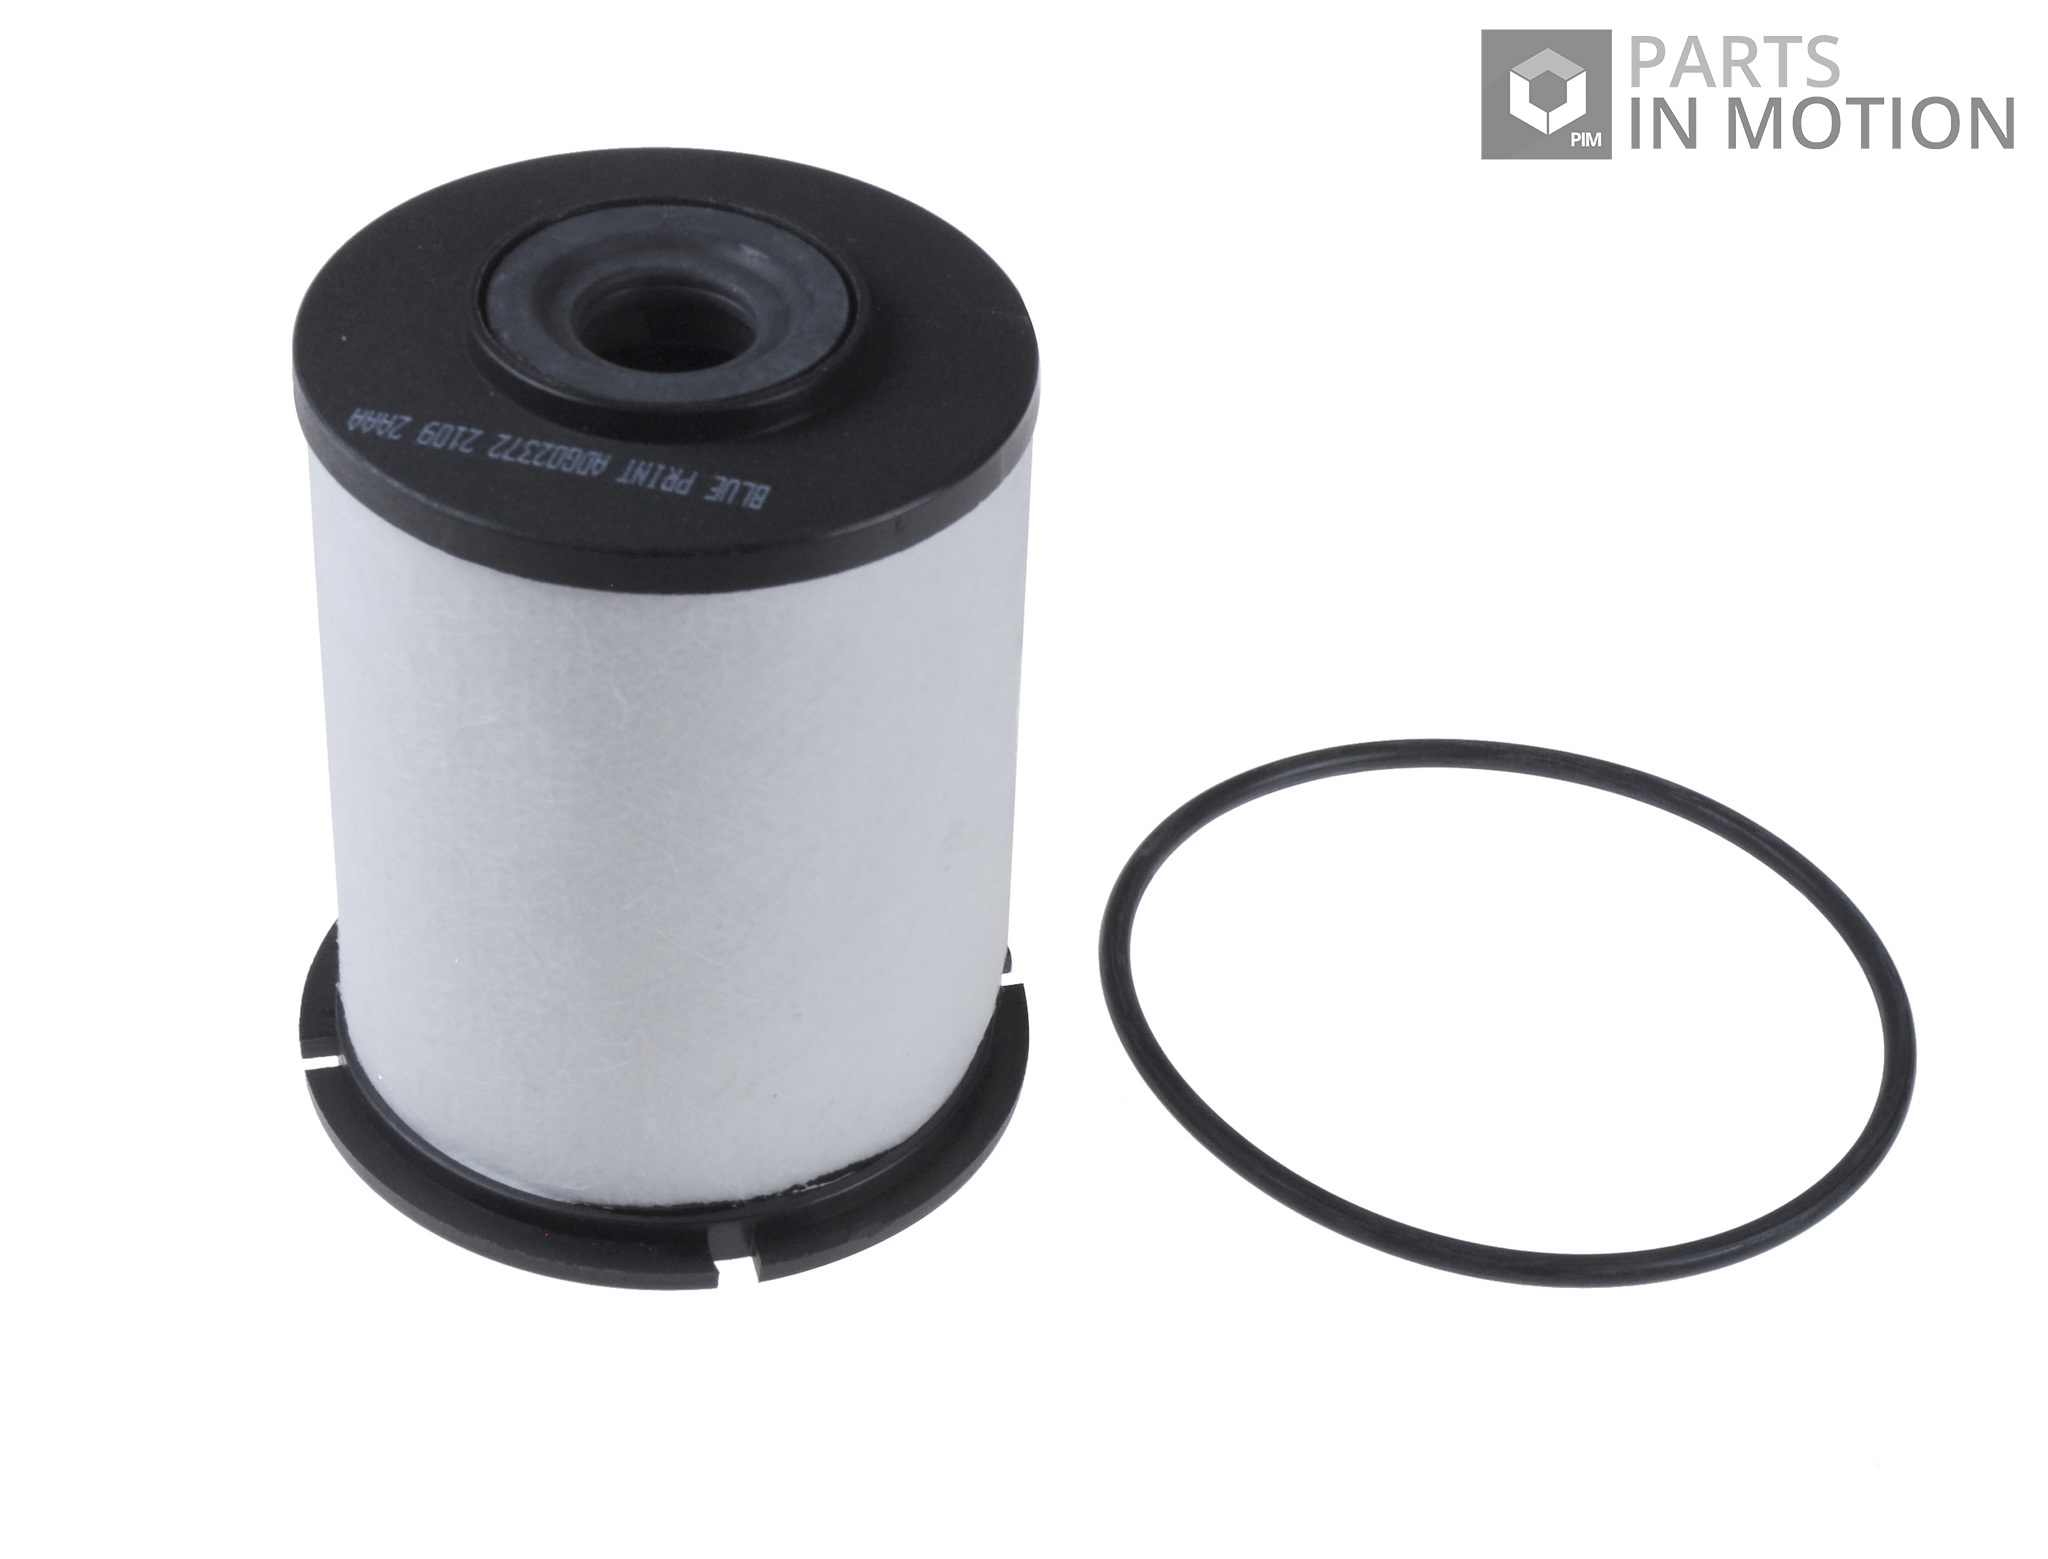 Chevrolet Aveo 13d 2x Fuel Filters 2011 On Adl 96896403 Top Quality Filter Location Blue Print Adg02372